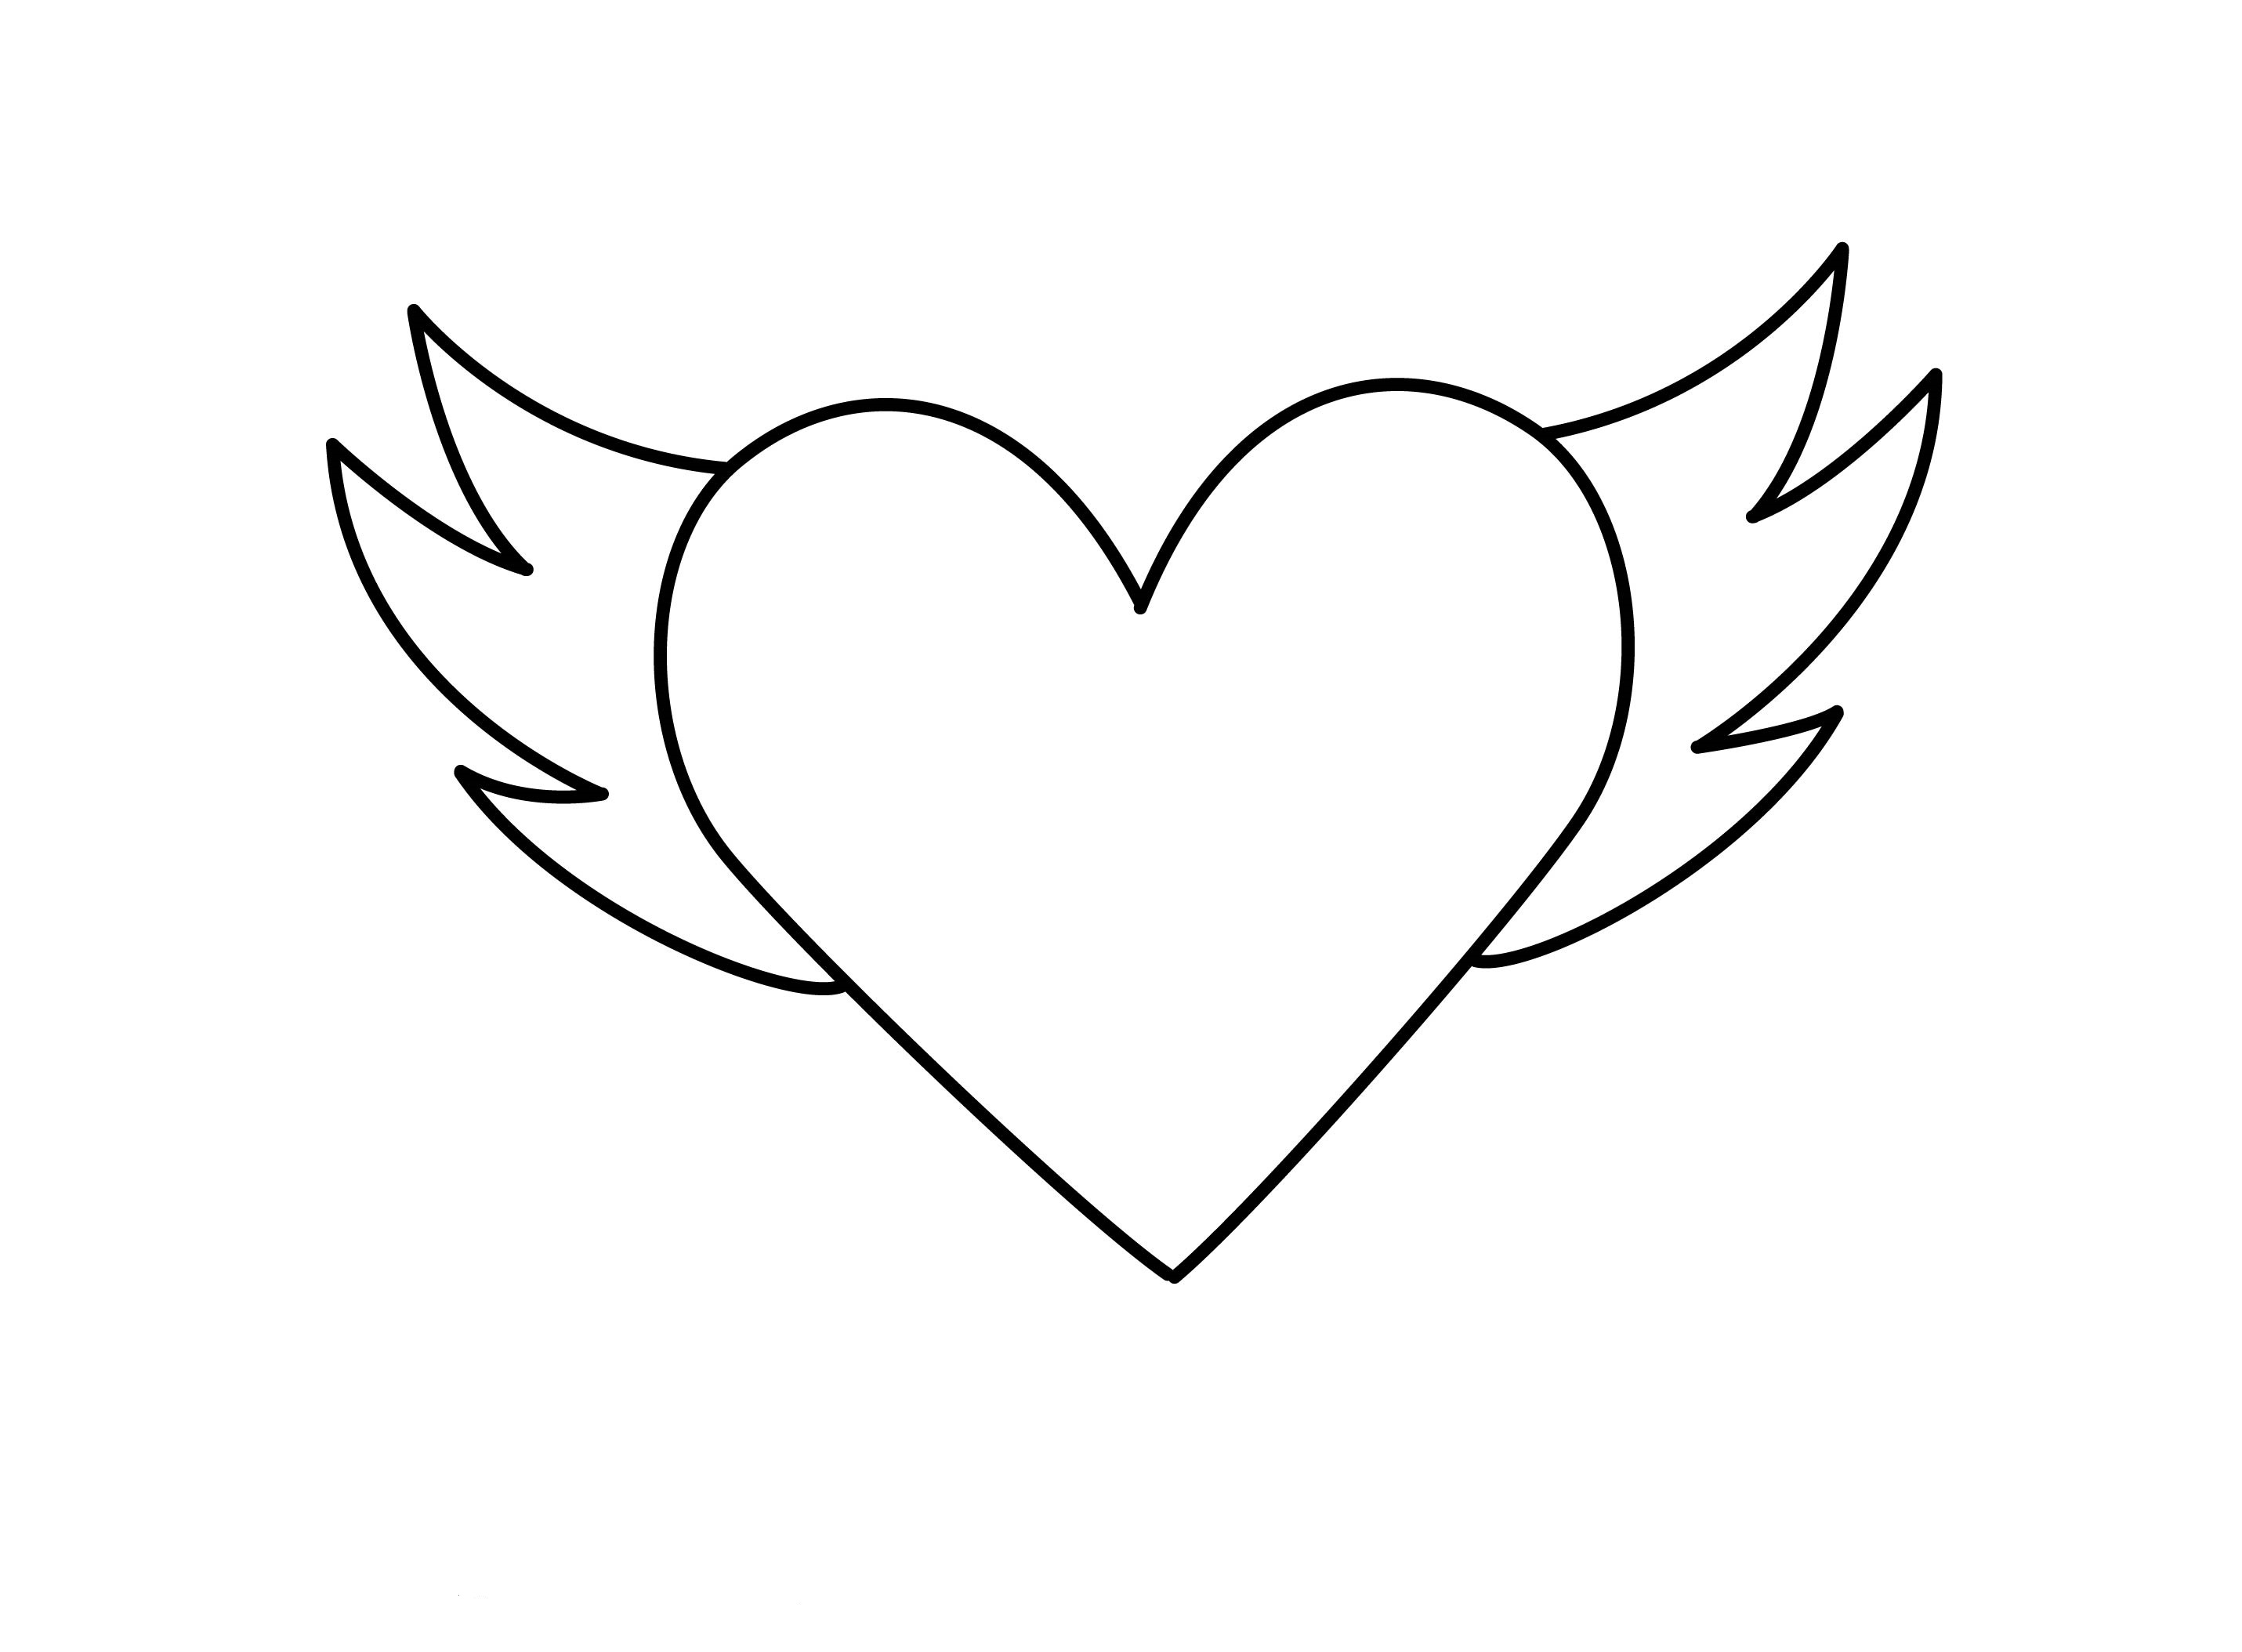 Heart Coloring Pages – coloring rocks!